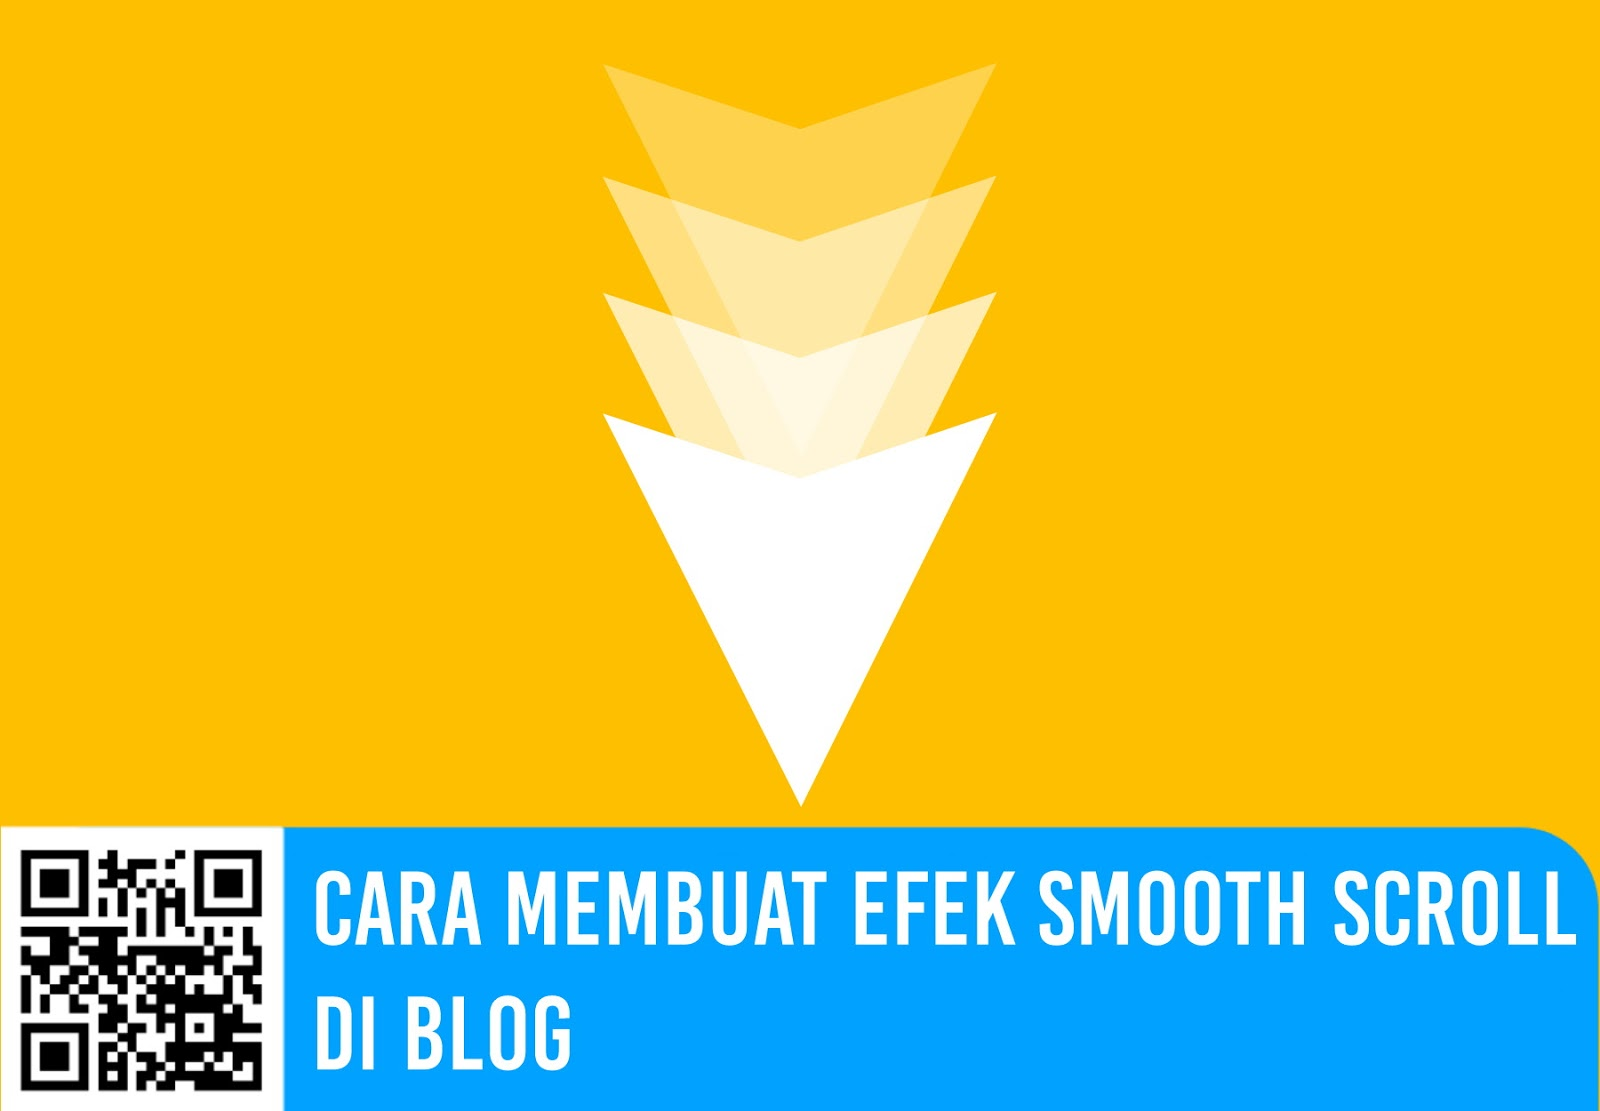 Cara Membuat Efek Smooth Scroll di Blog